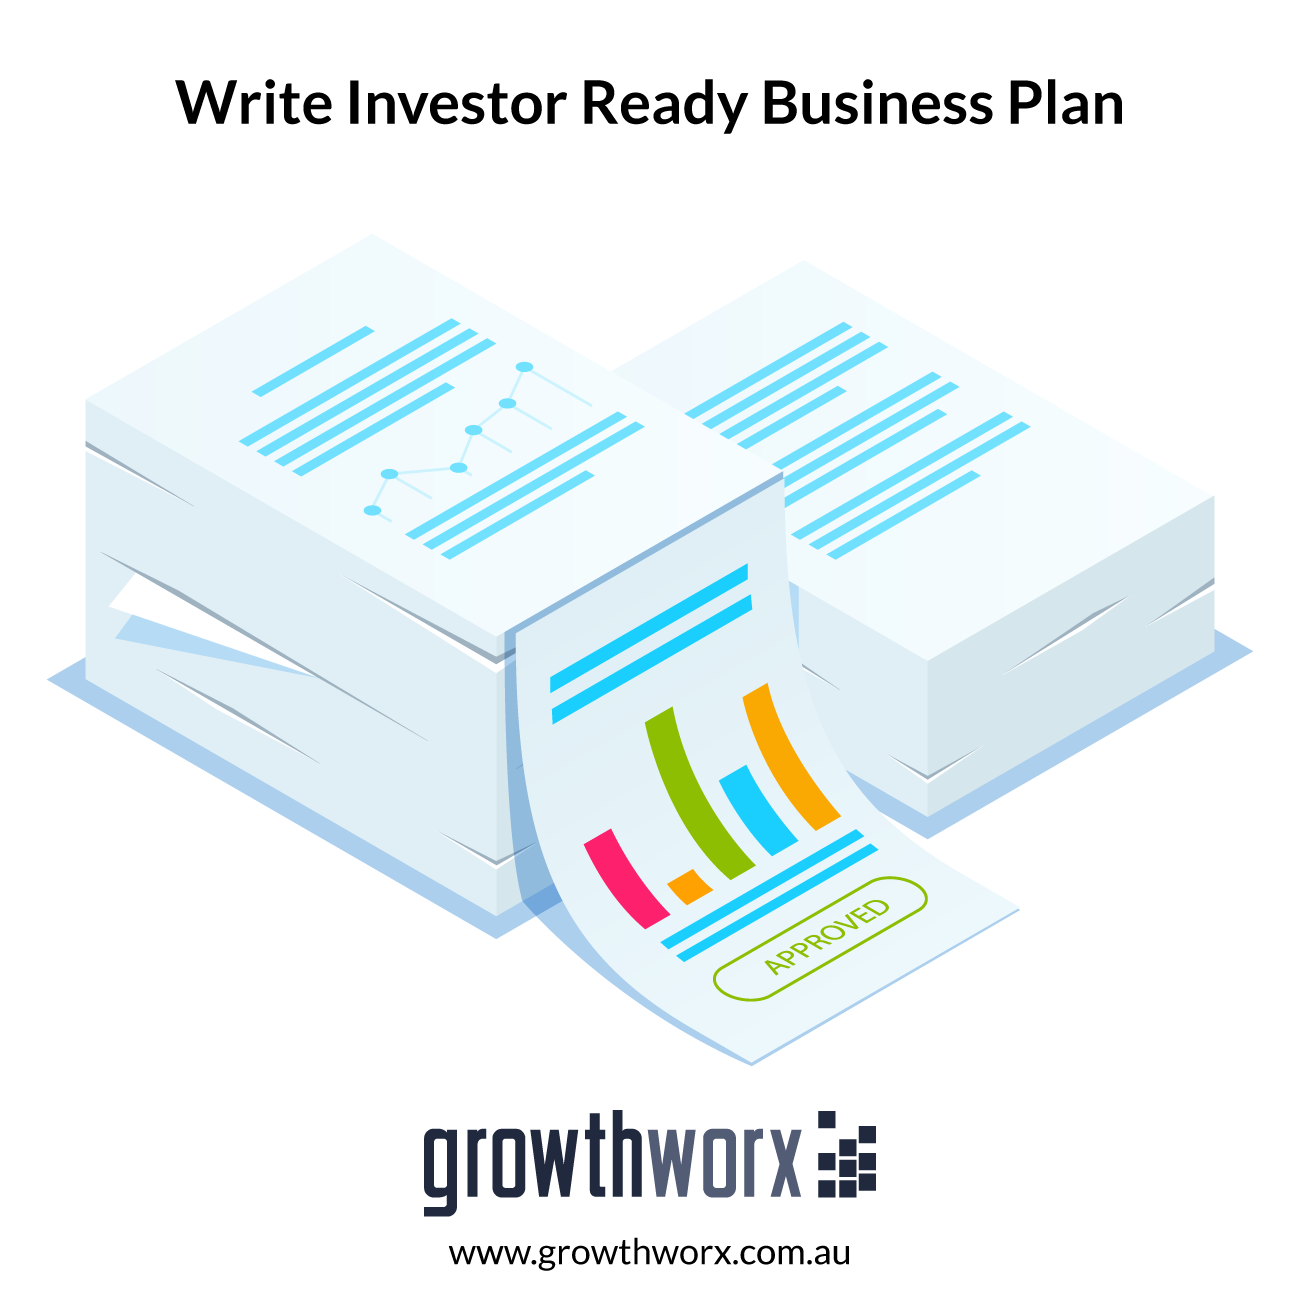 I will write investor ready business plan and market research for startups 1